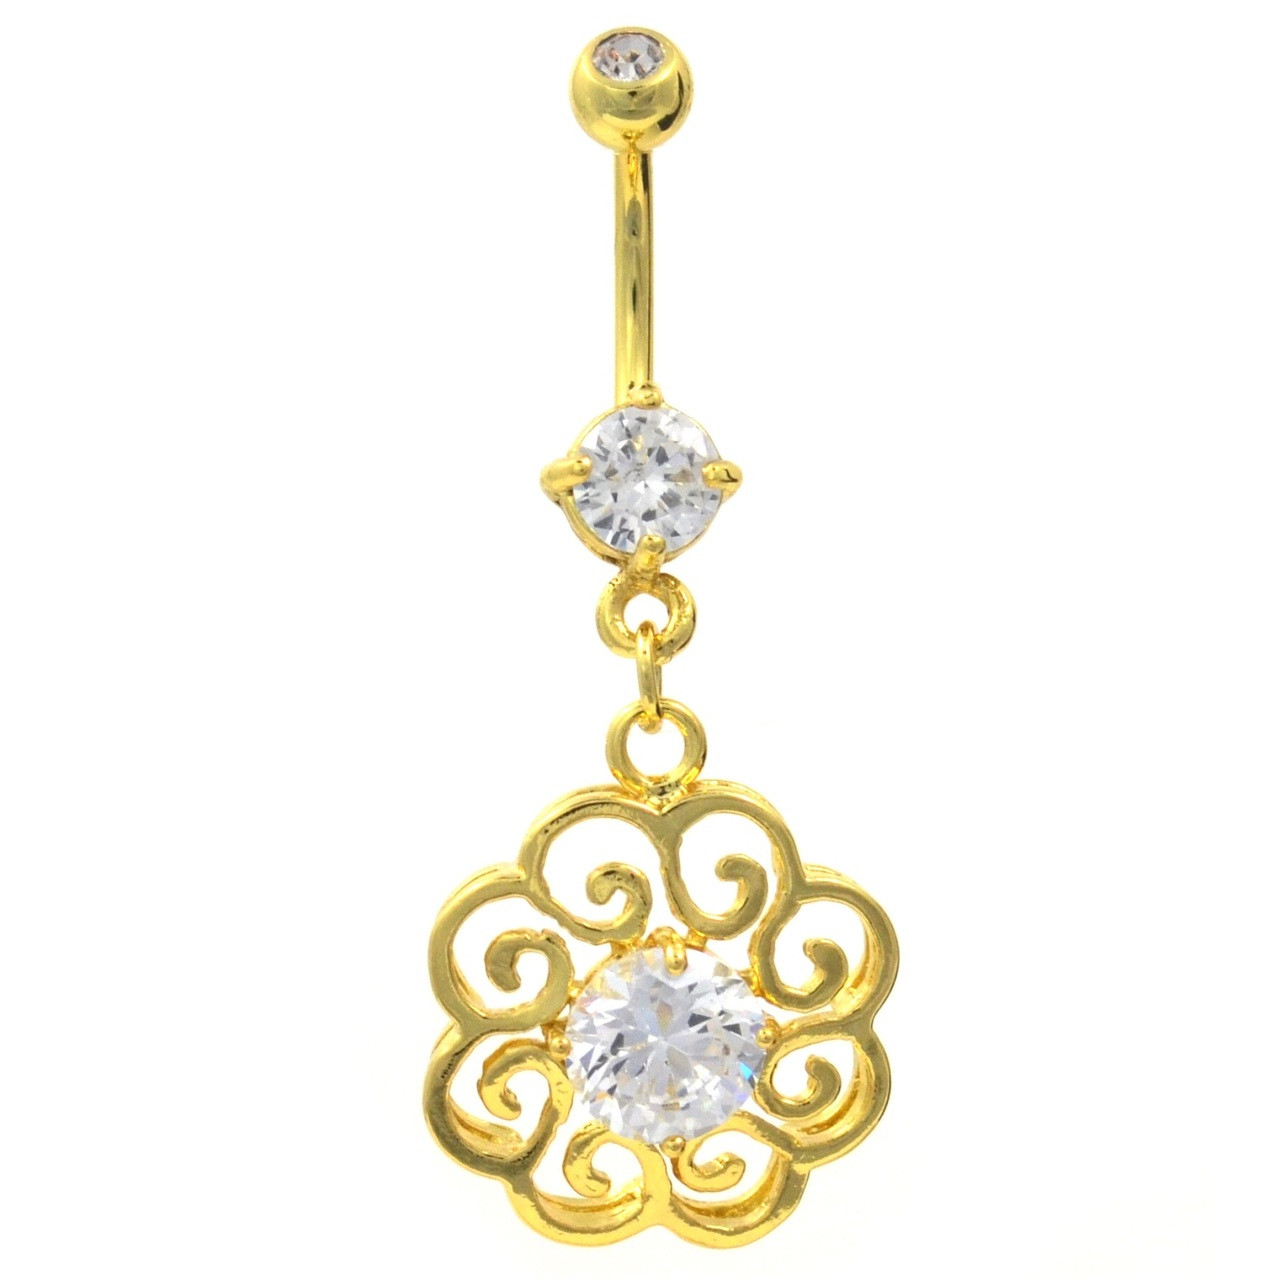 Gold Plated Hollow Swirly Medallion Belly Ring